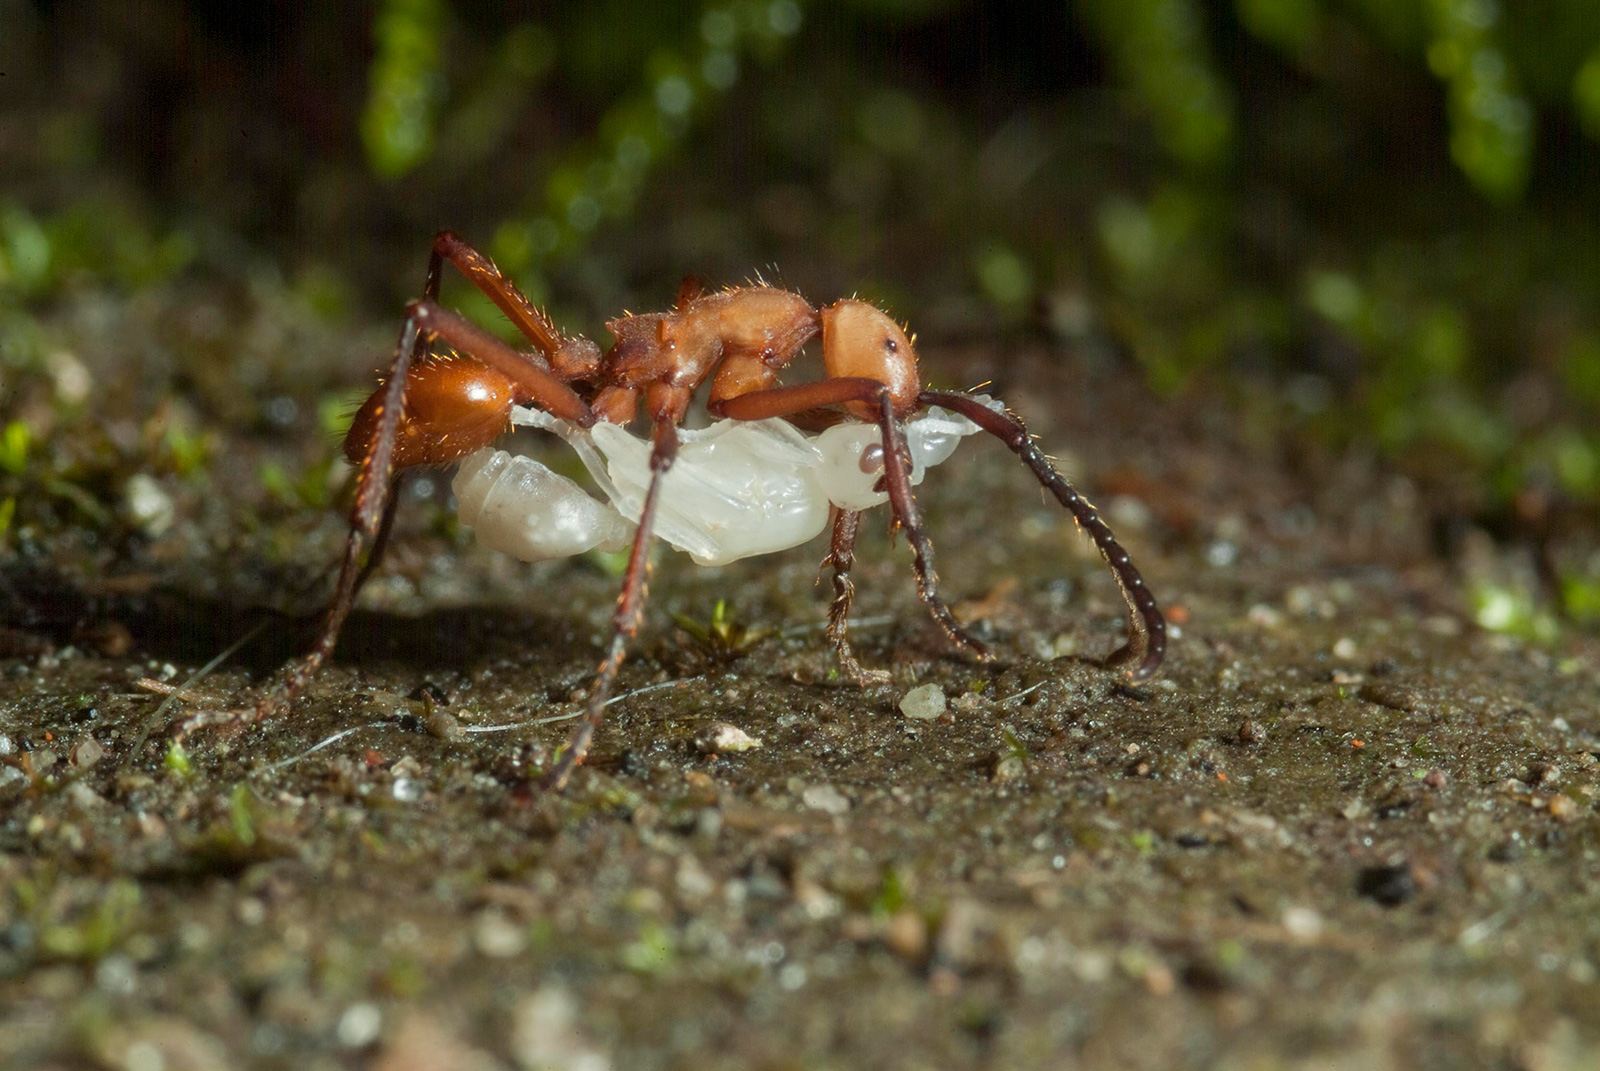 A large ant on the forest floor